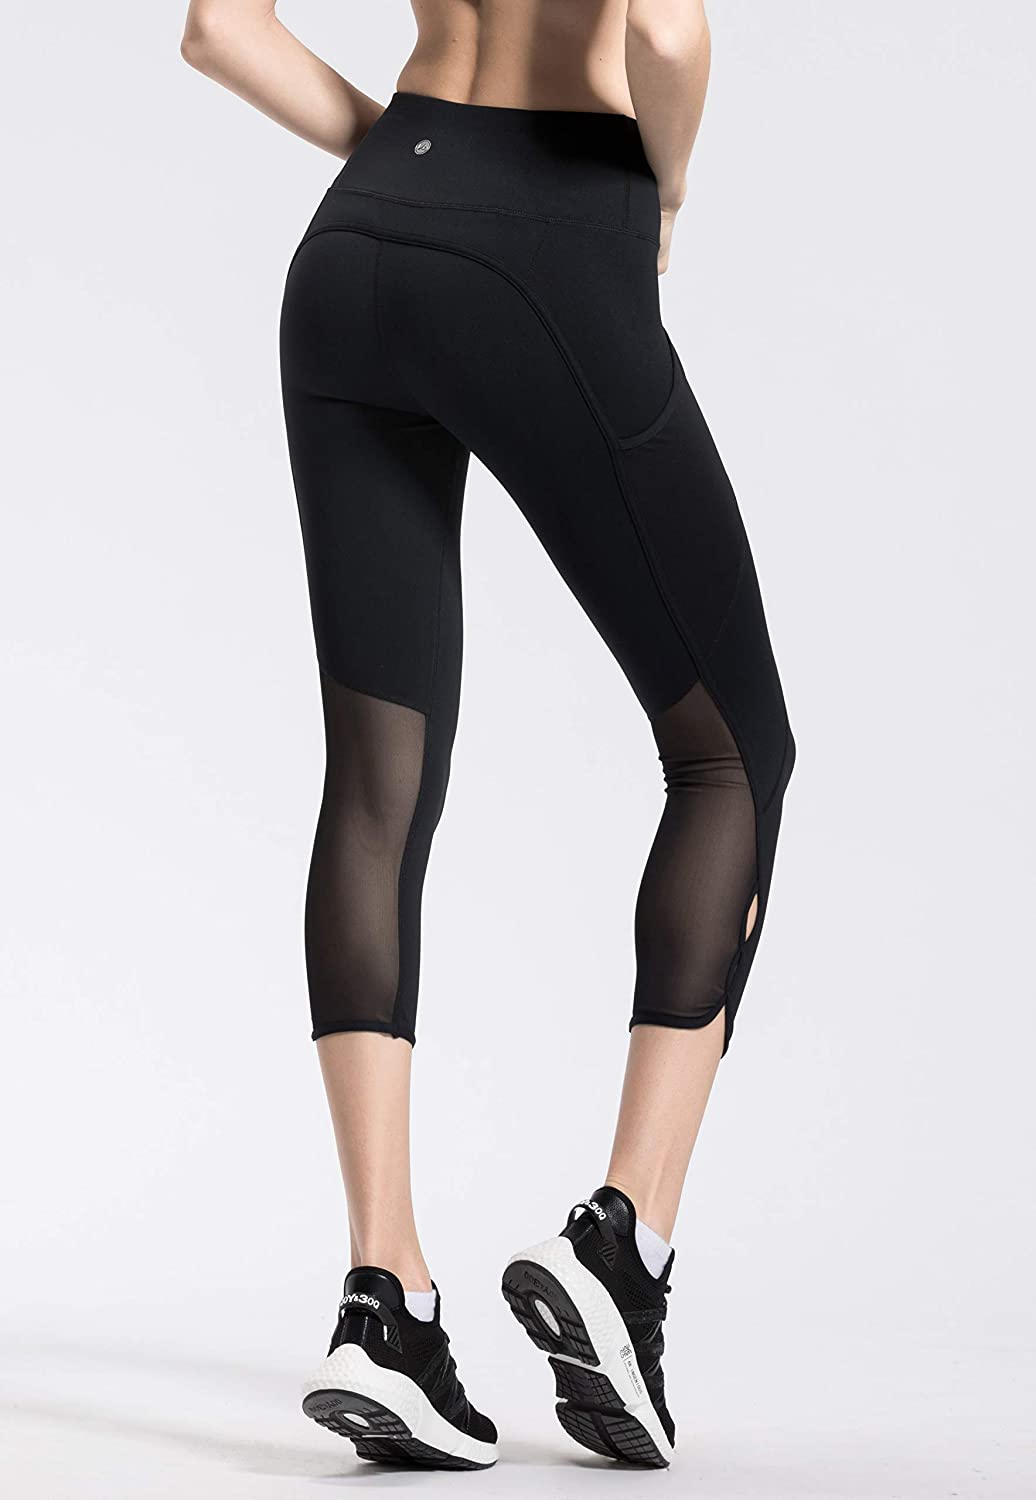 QUEENIEKE Femme 22 Legging de Sport Pantalon pour Course Yoga Pilate Gymnase